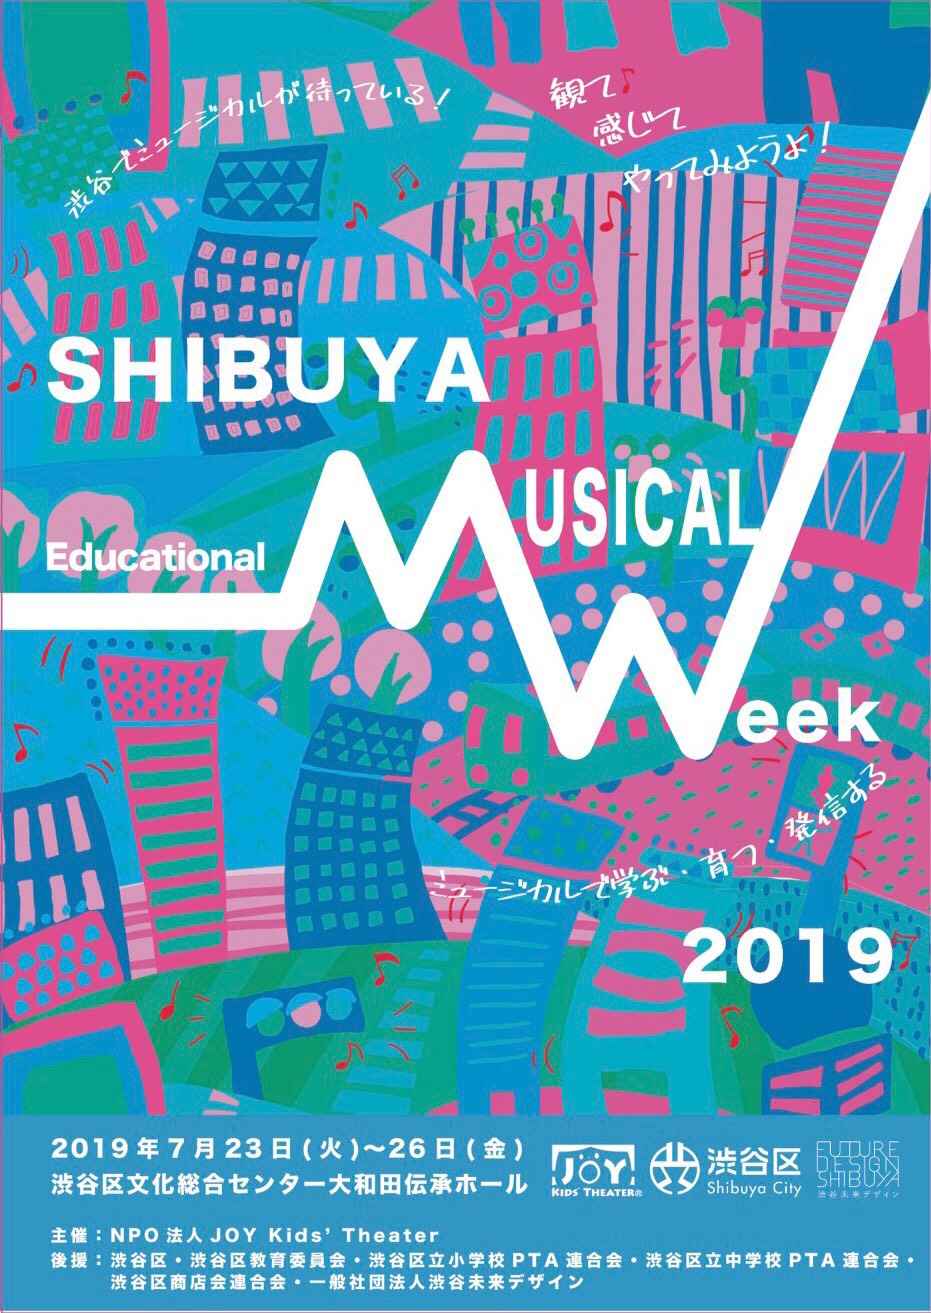 SHIBUYA Educational Musical Week 2019